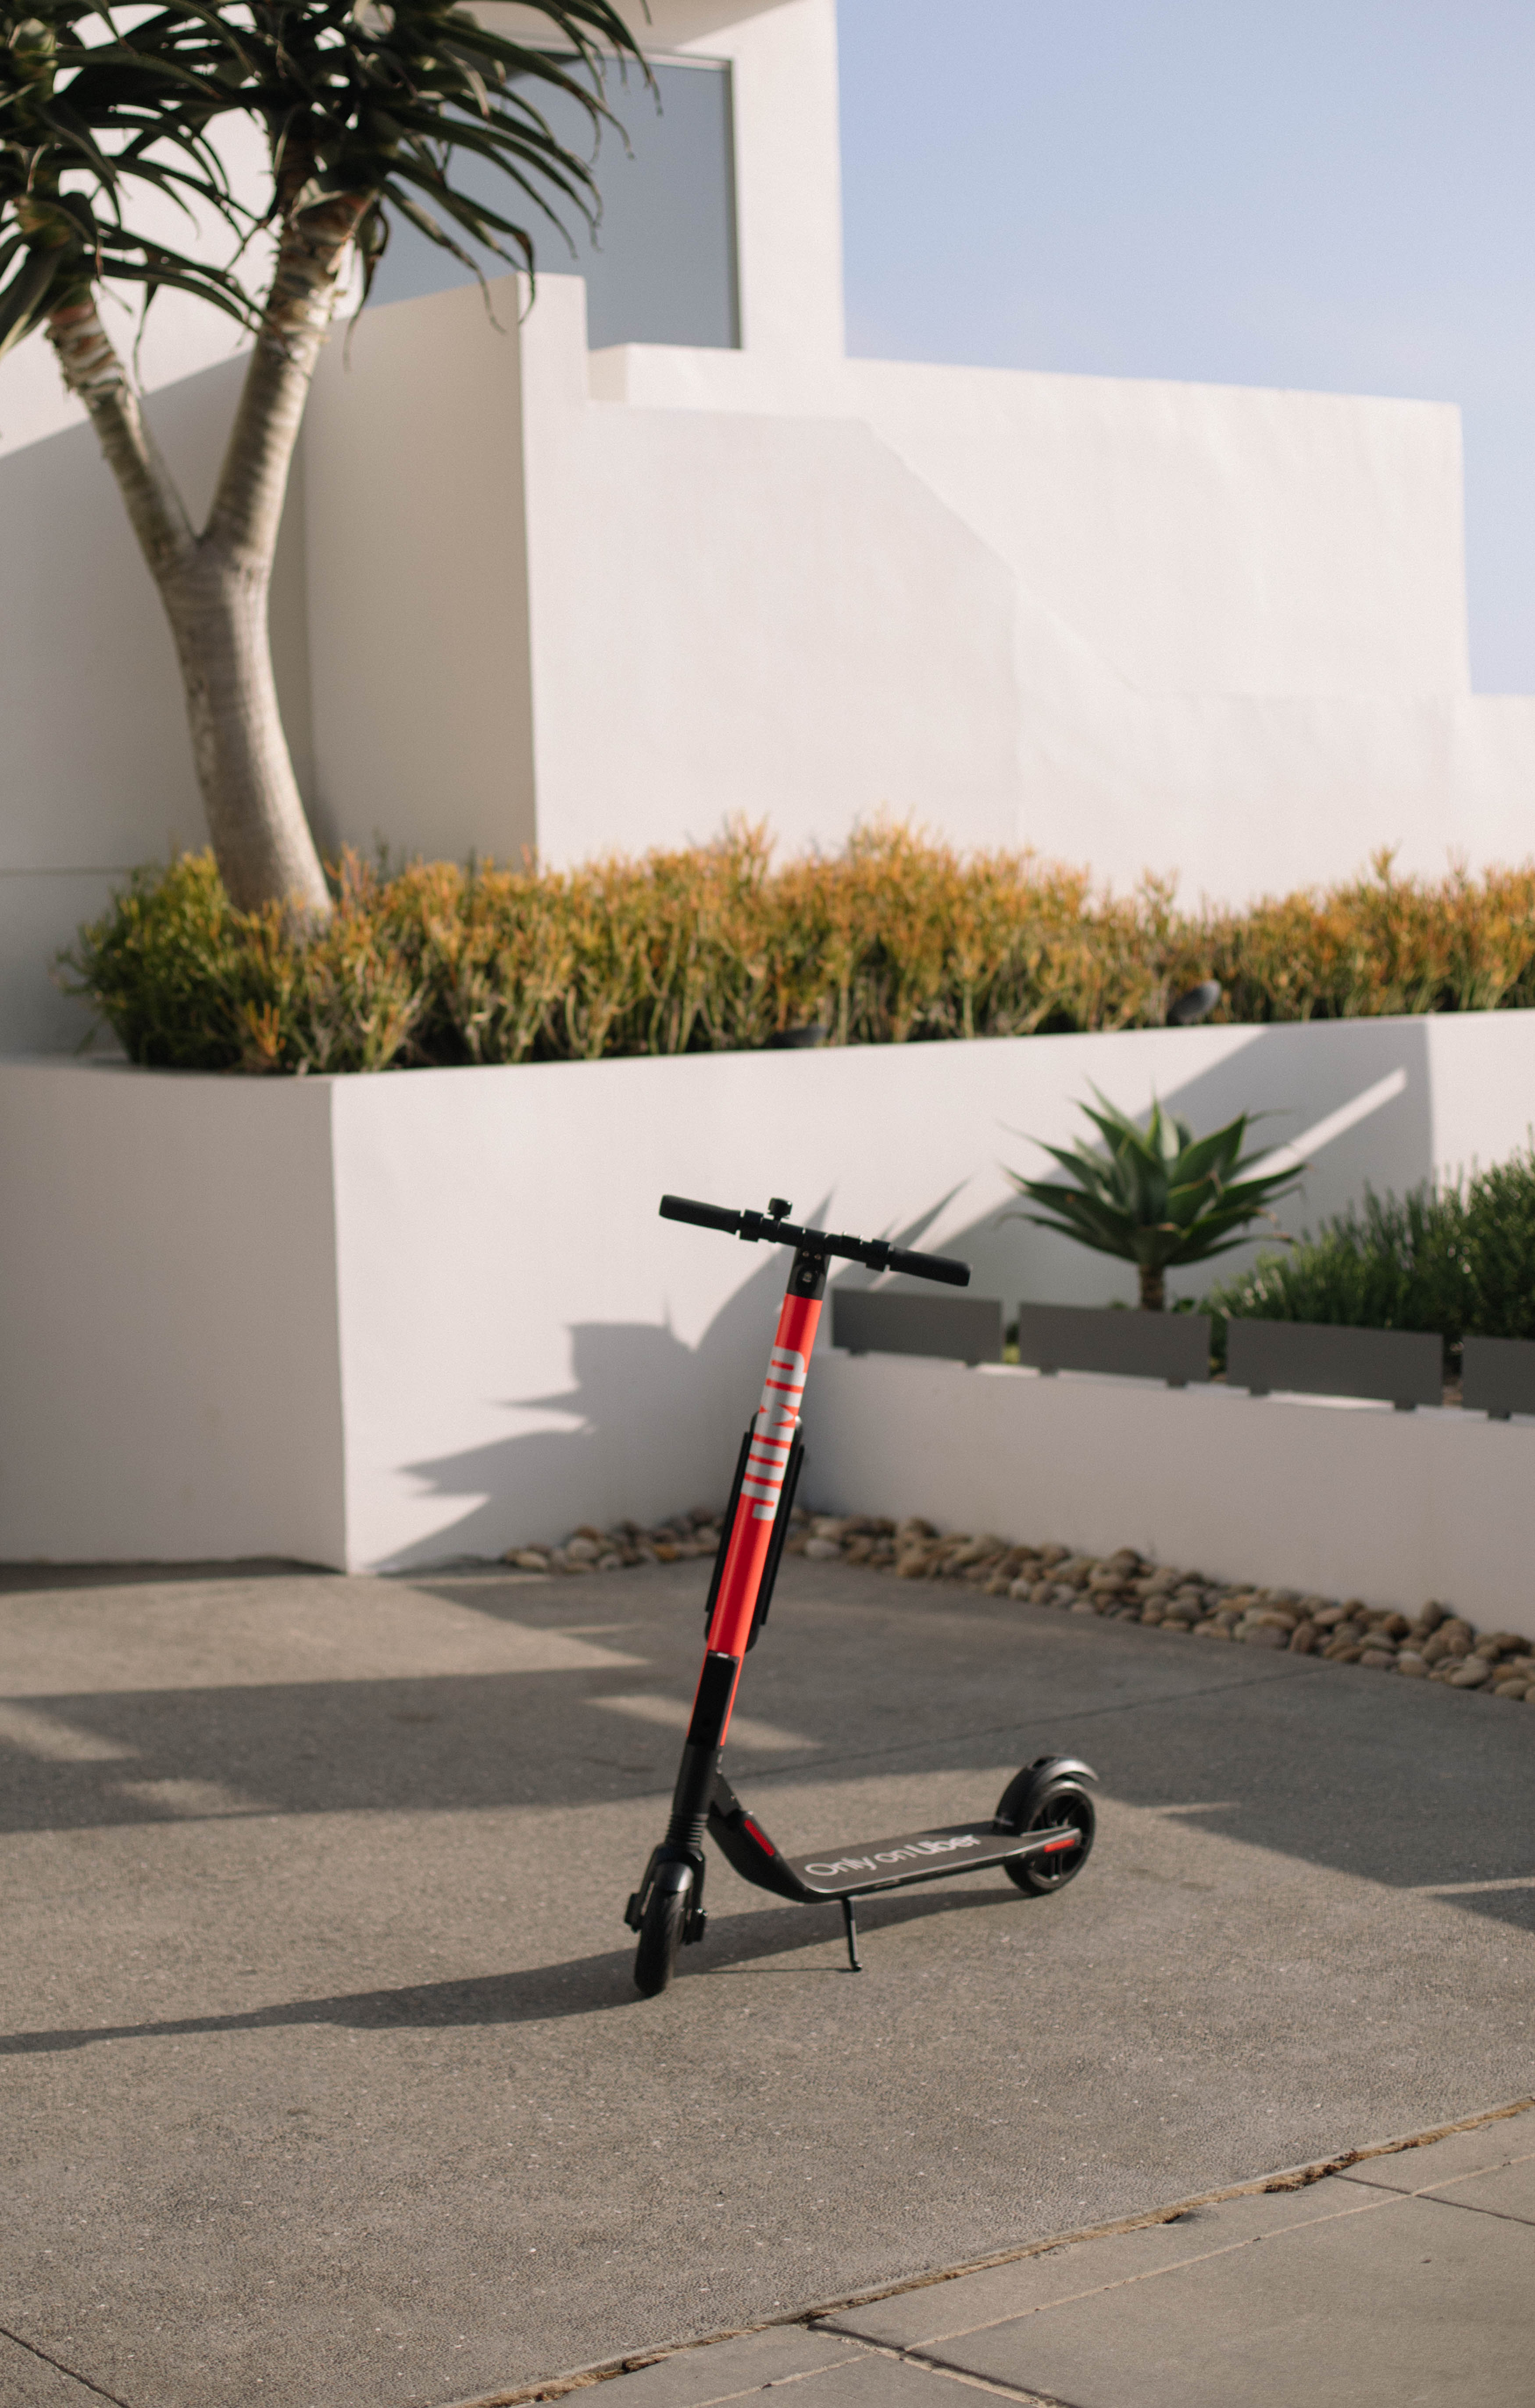 Another way to get from A to B with JUMP Scooters | Uber